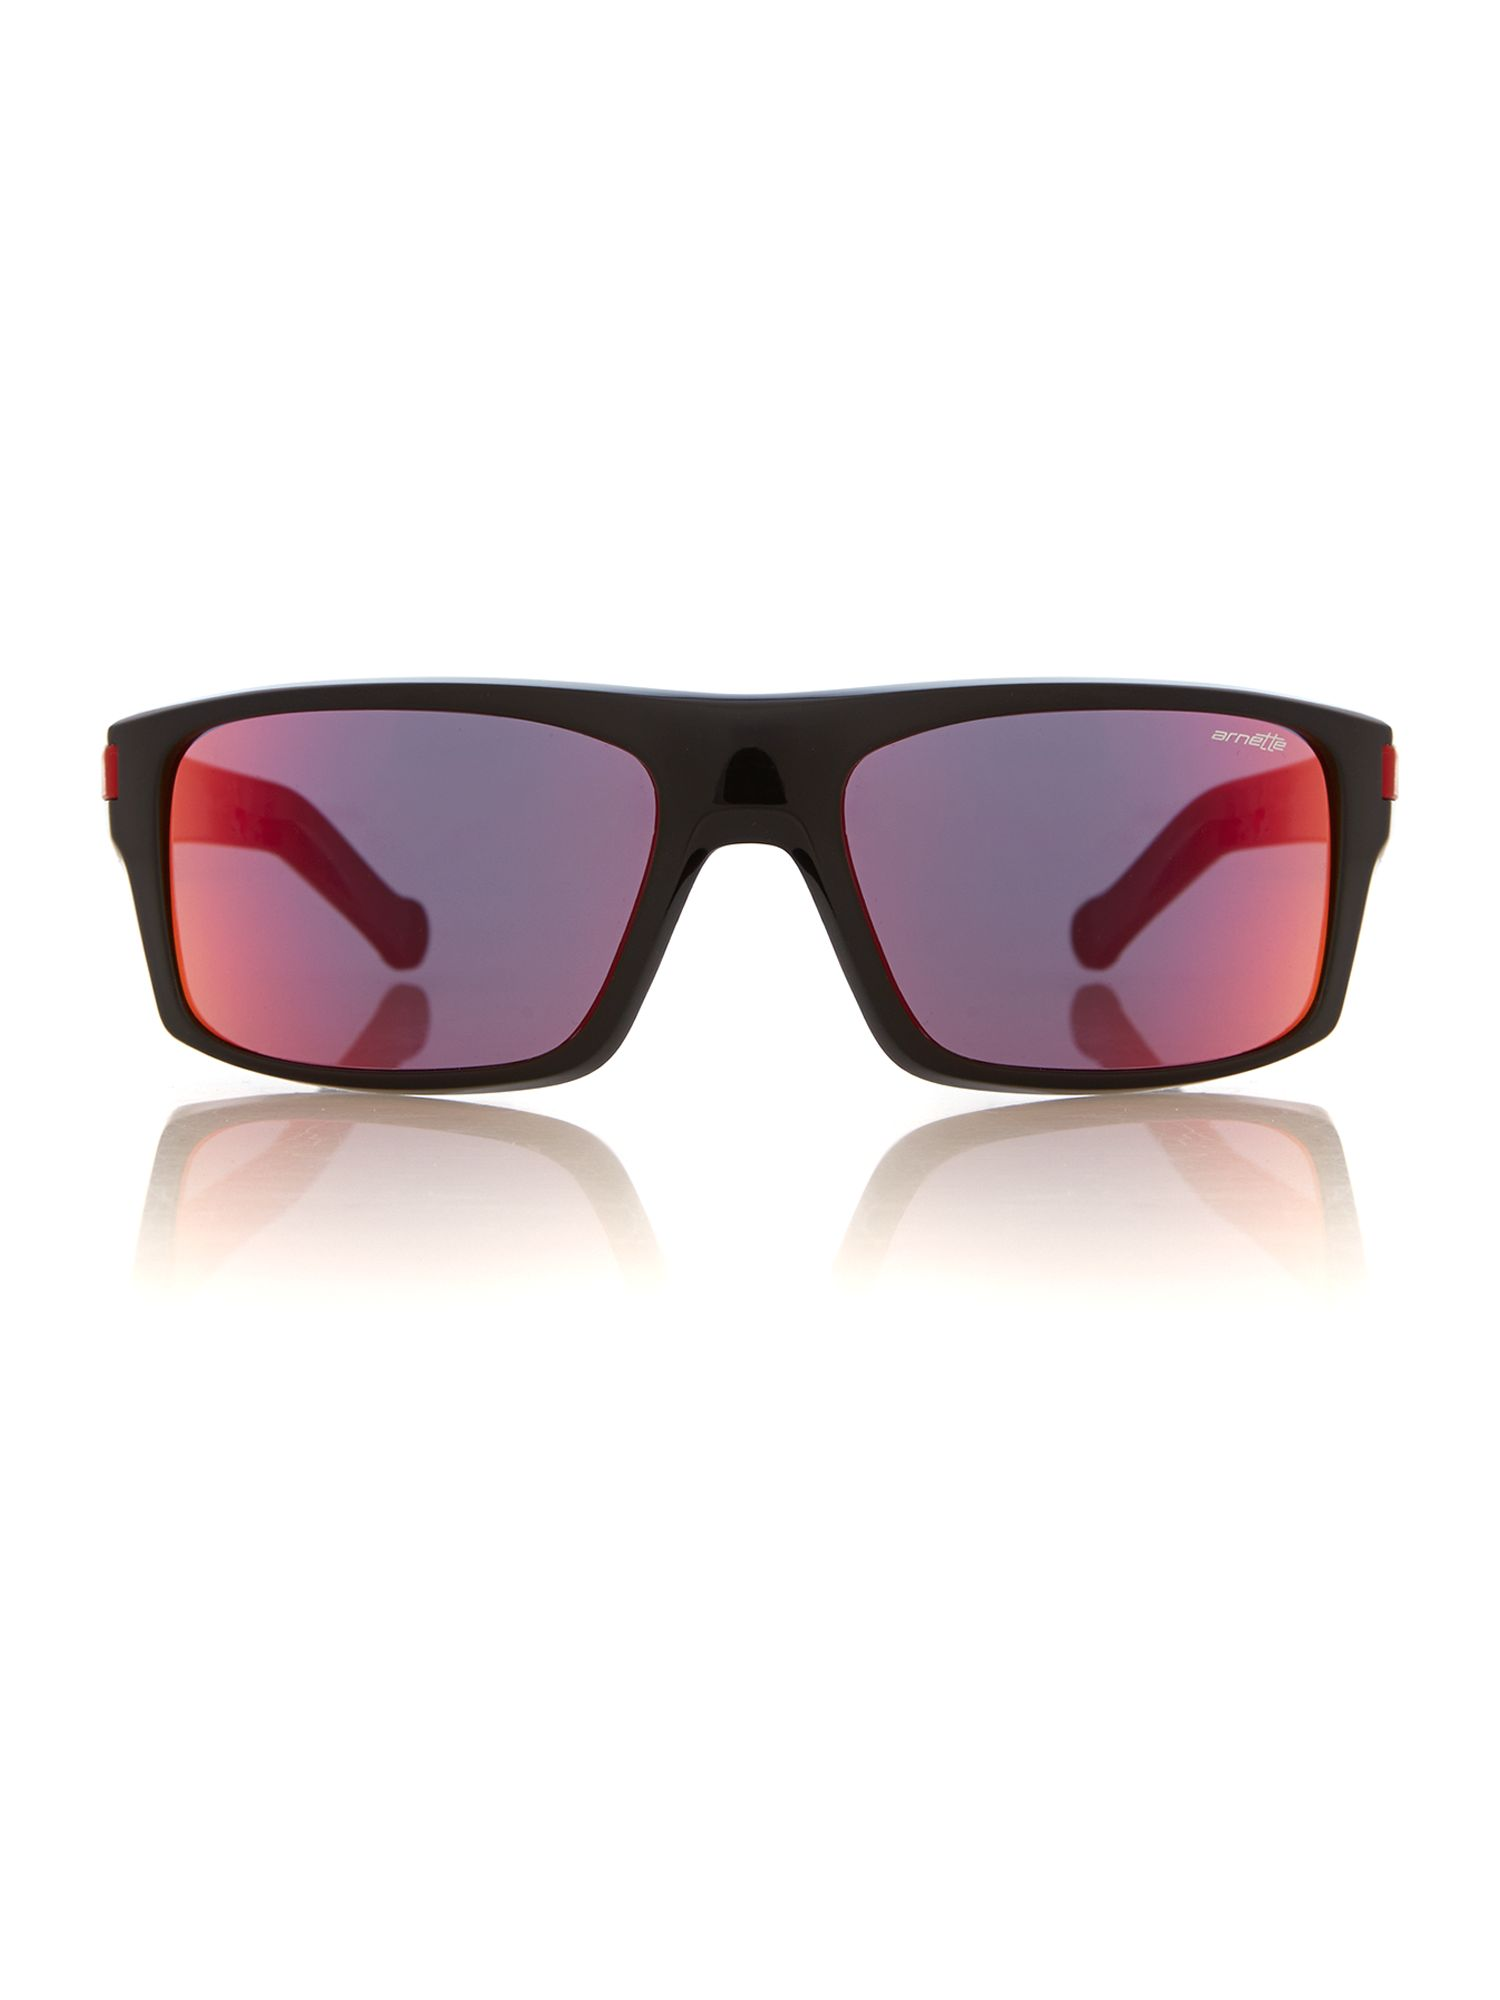 Men grey mirror red rectangle sunglasses